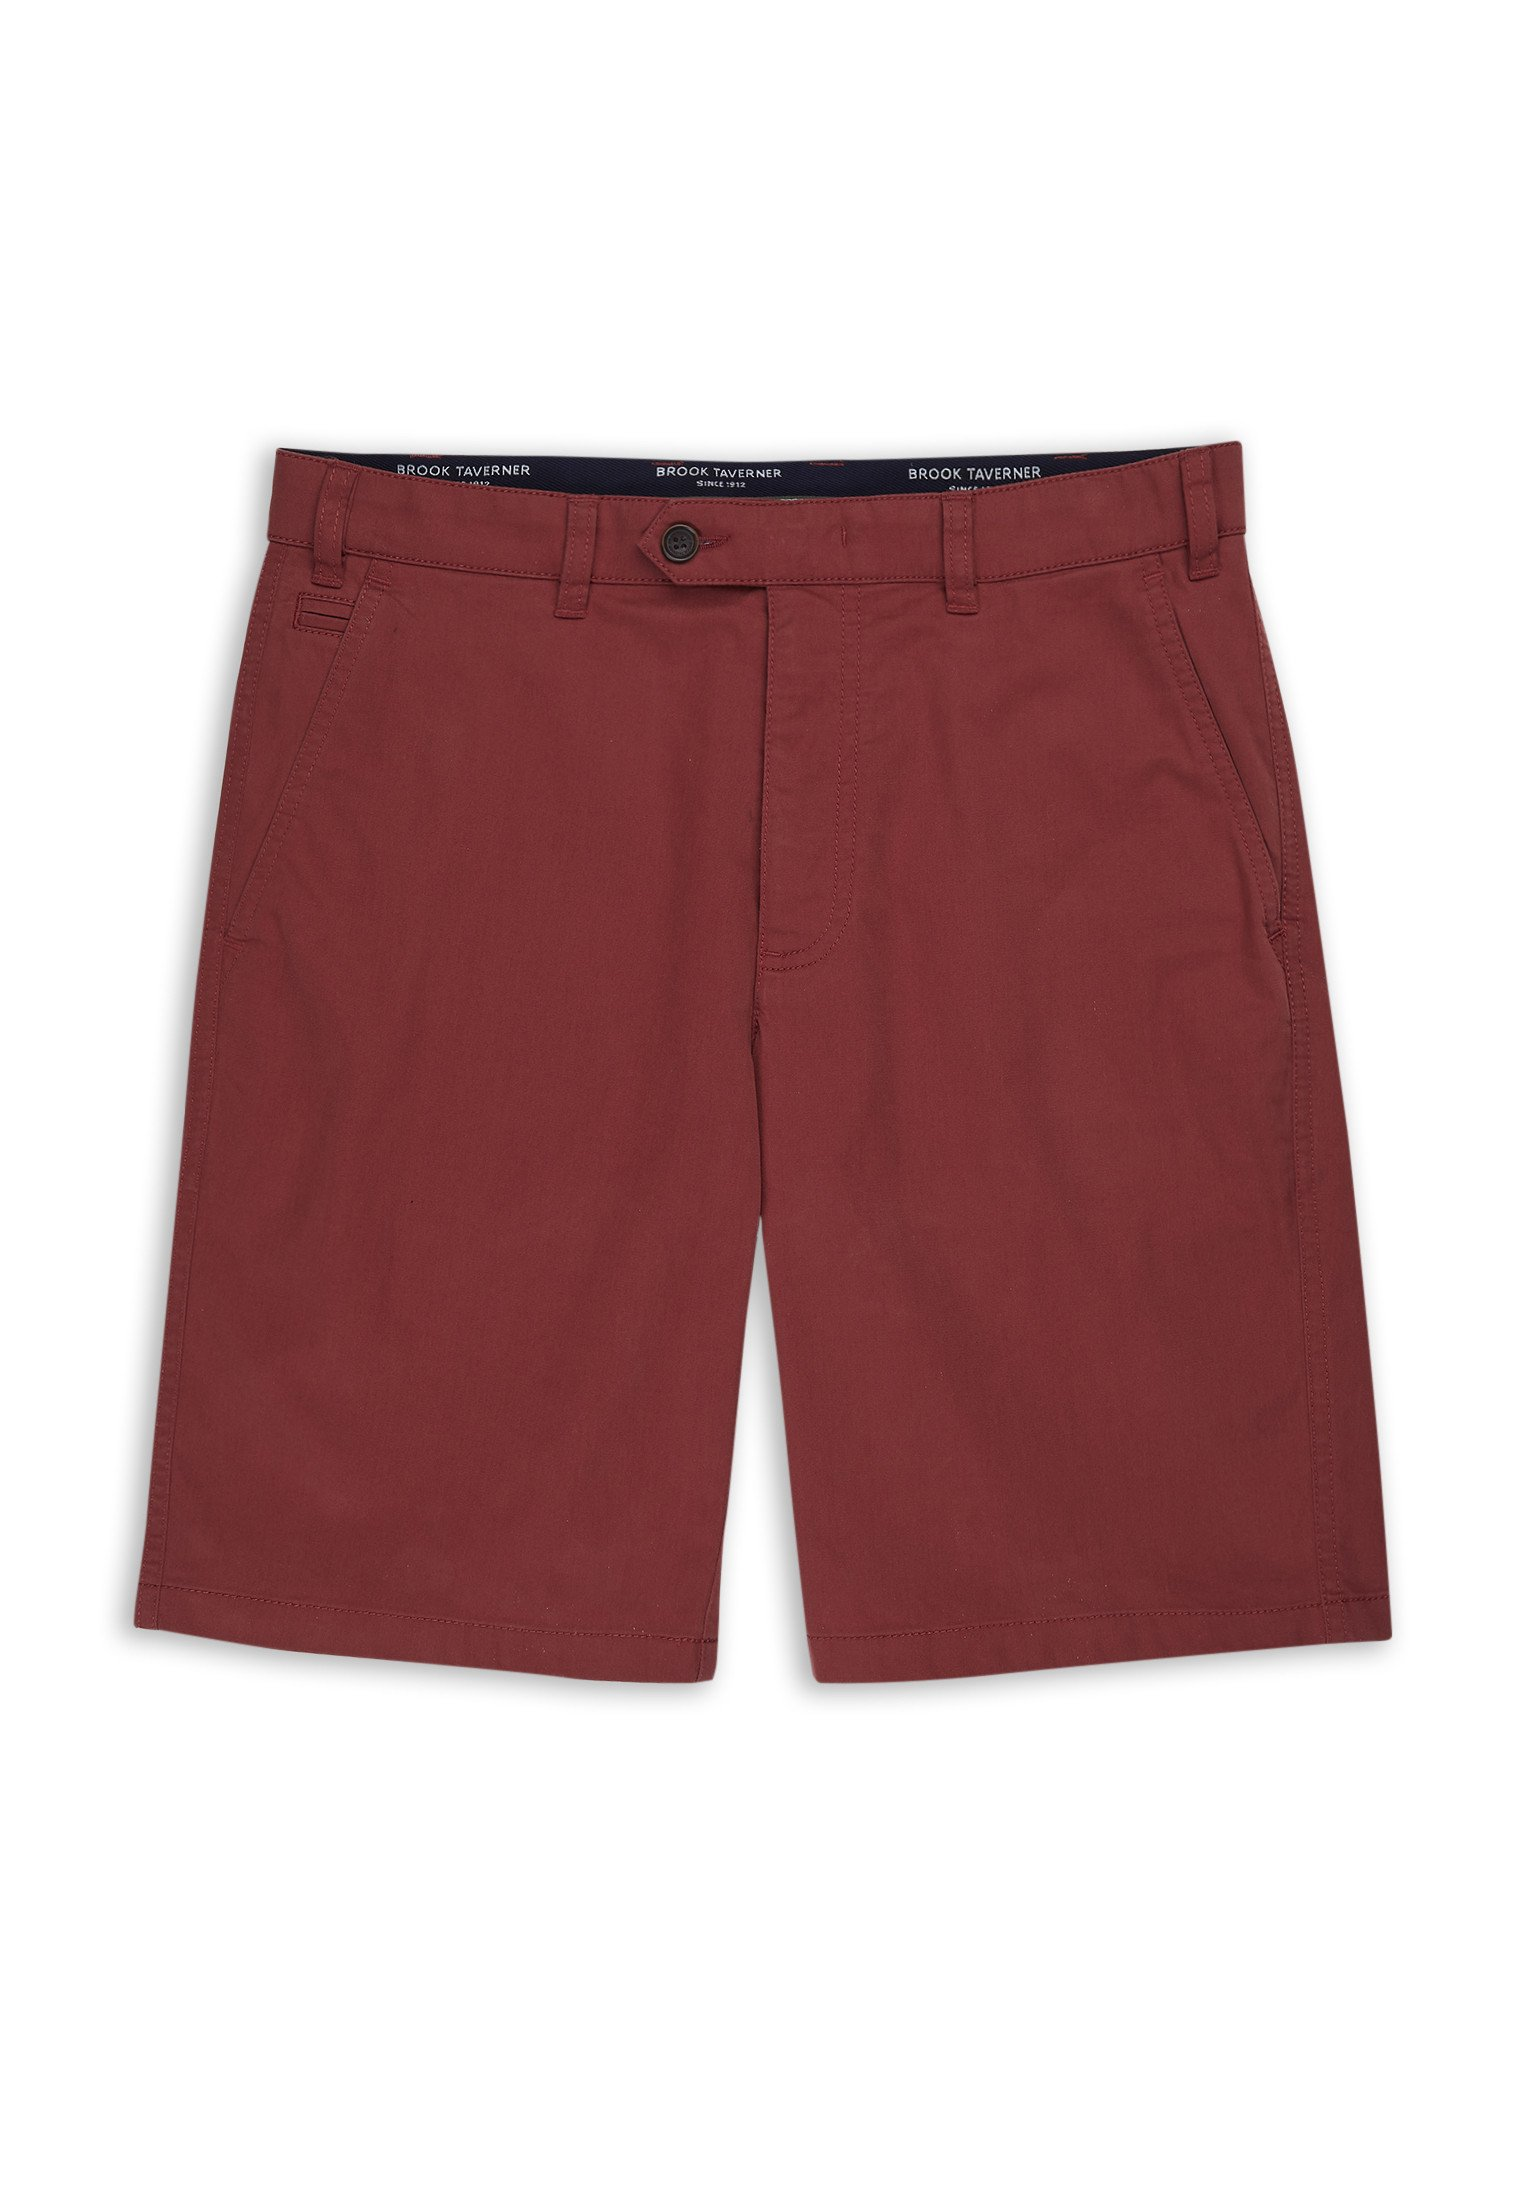 Brook Taverner Ashdown Chino Shorts in tomato